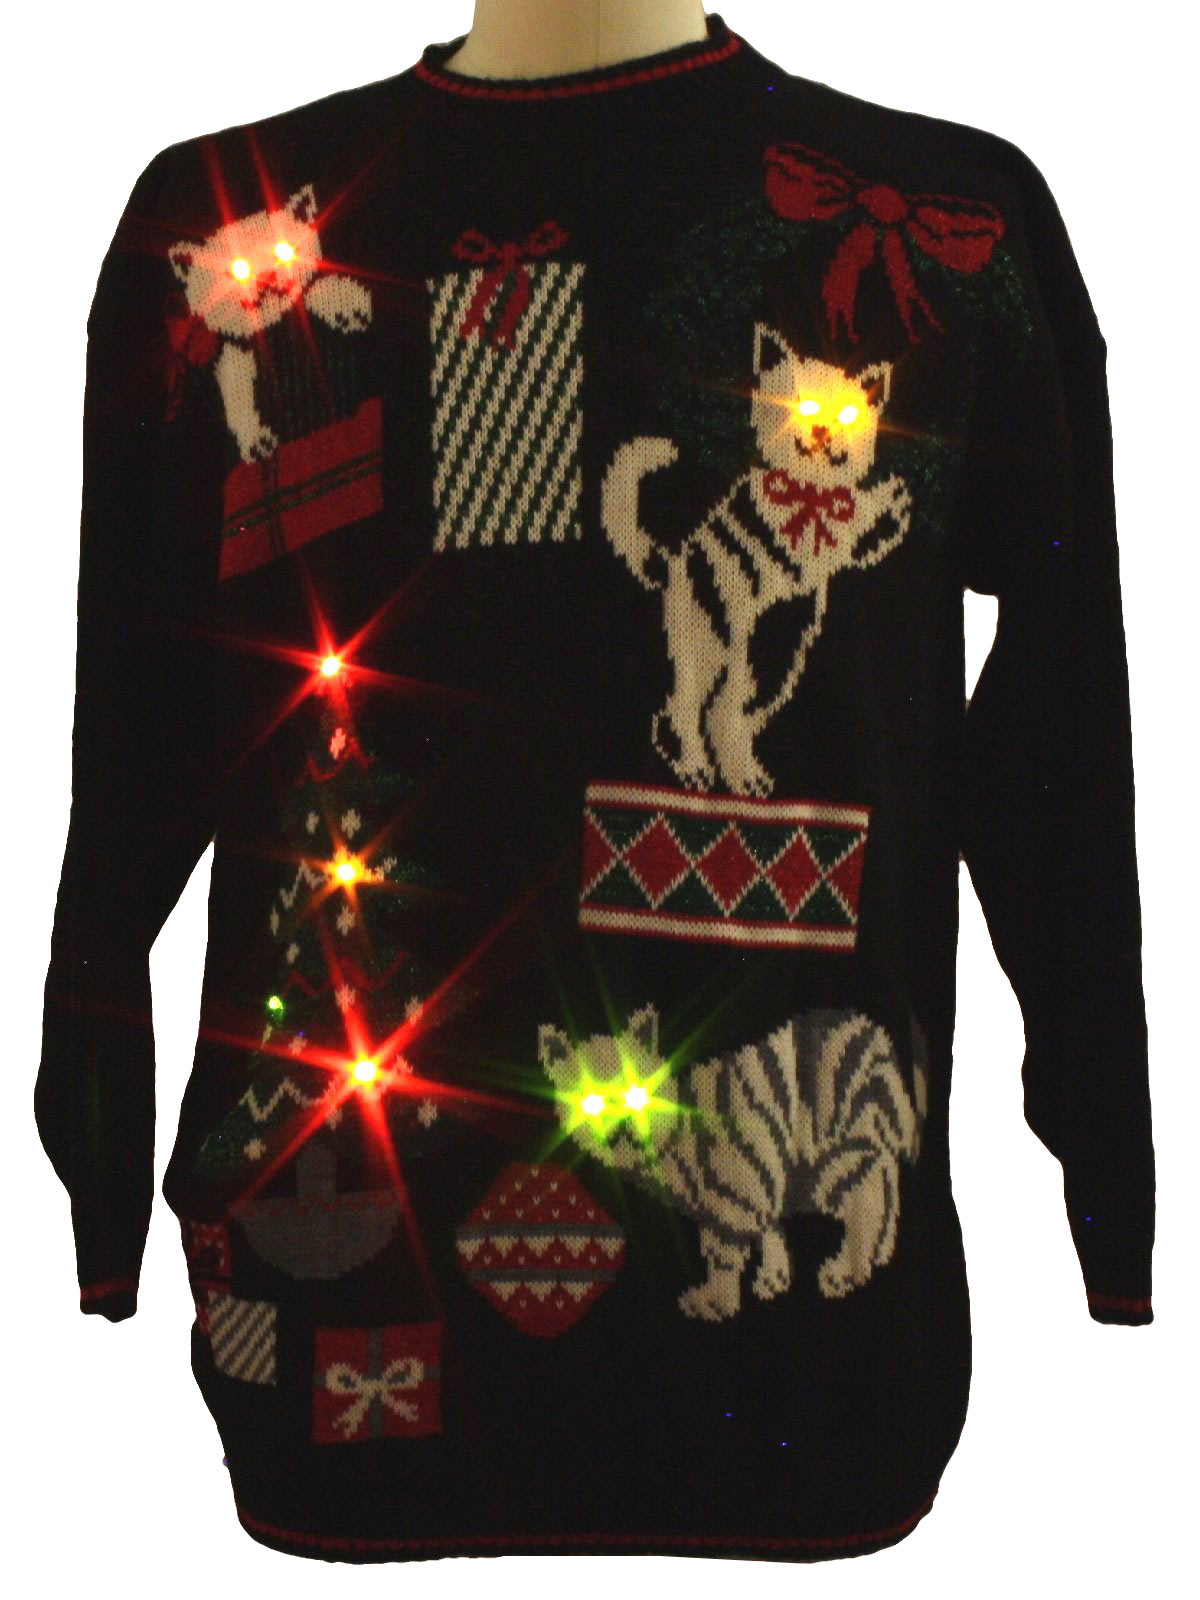 Eighties Cat Tastic Ugly Lightup Christmas Sweater 80s Authentic